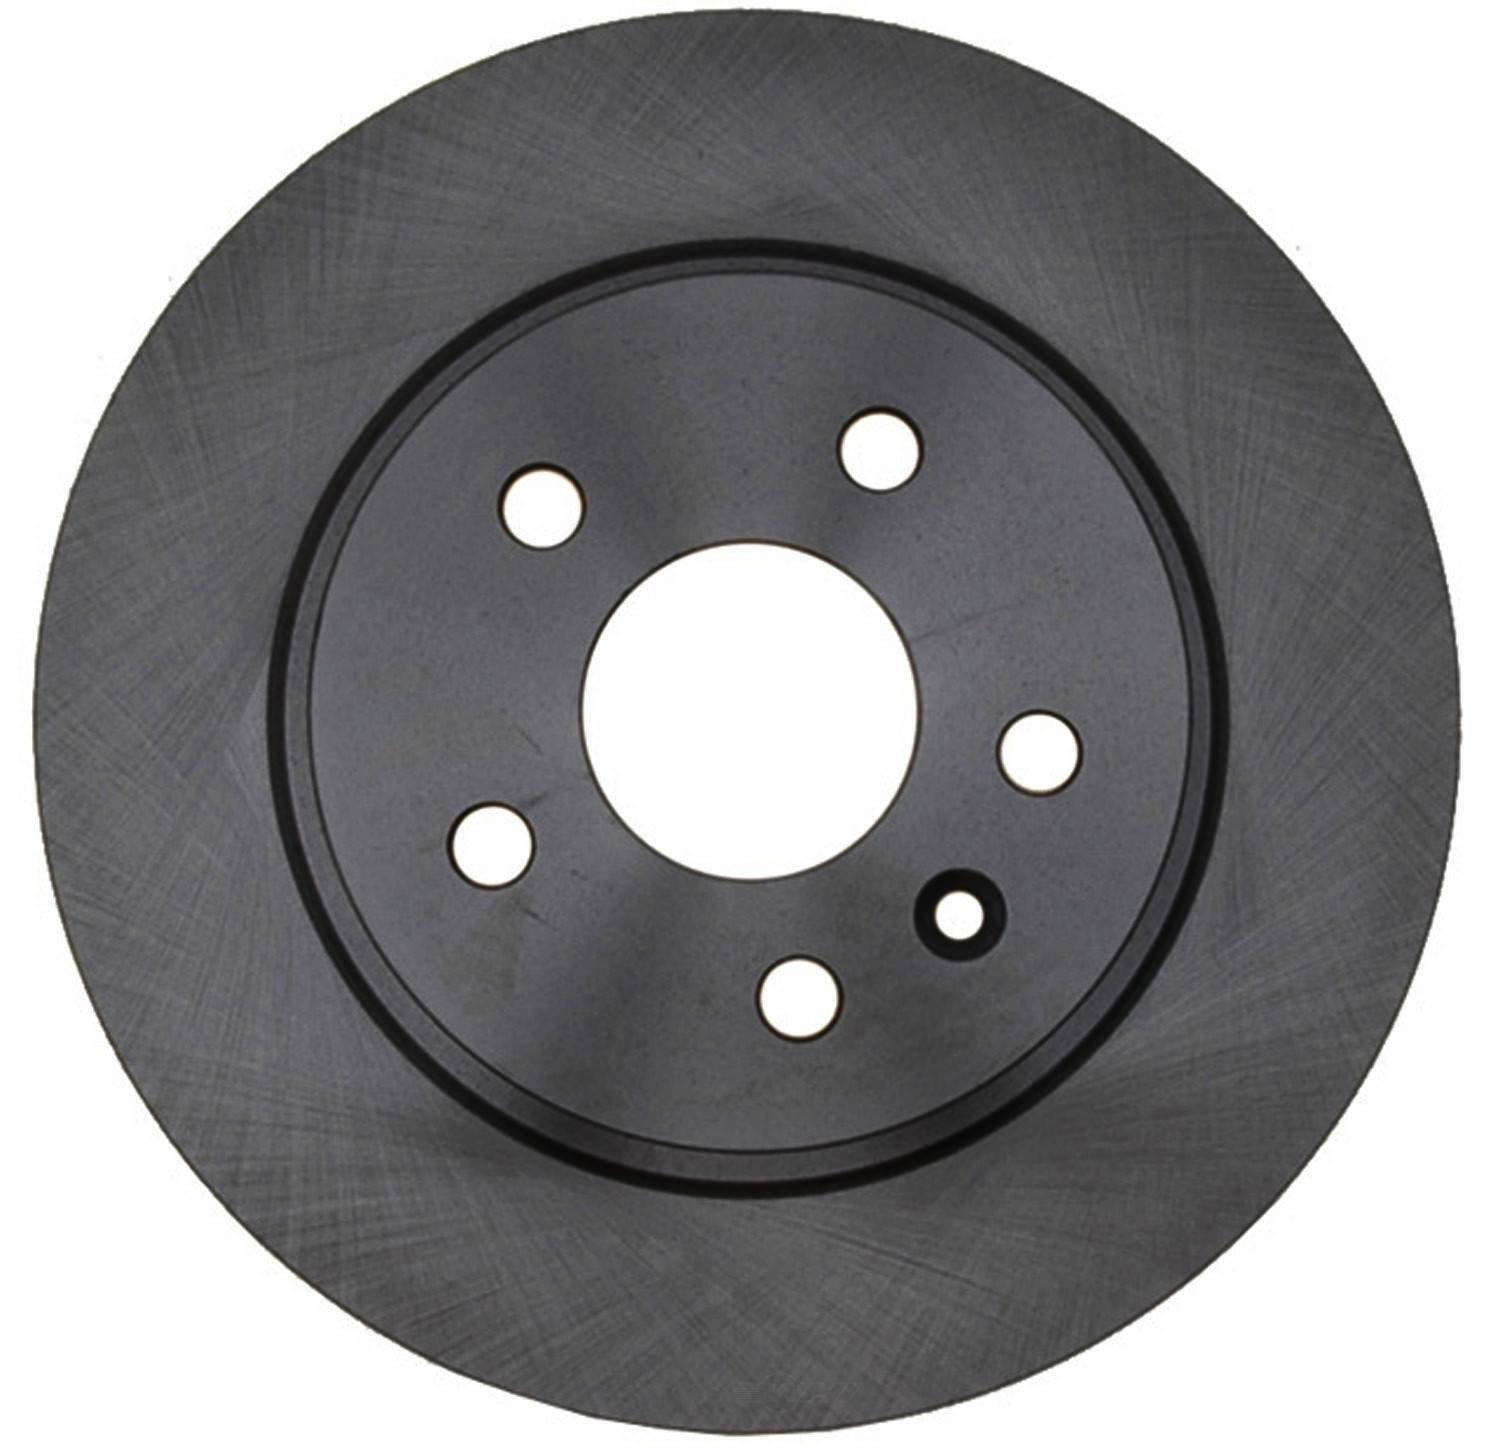 ACDELCO SILVER/ADVANTAGE - Disc Brake Rotor (Rear) - DCD 18A2821A